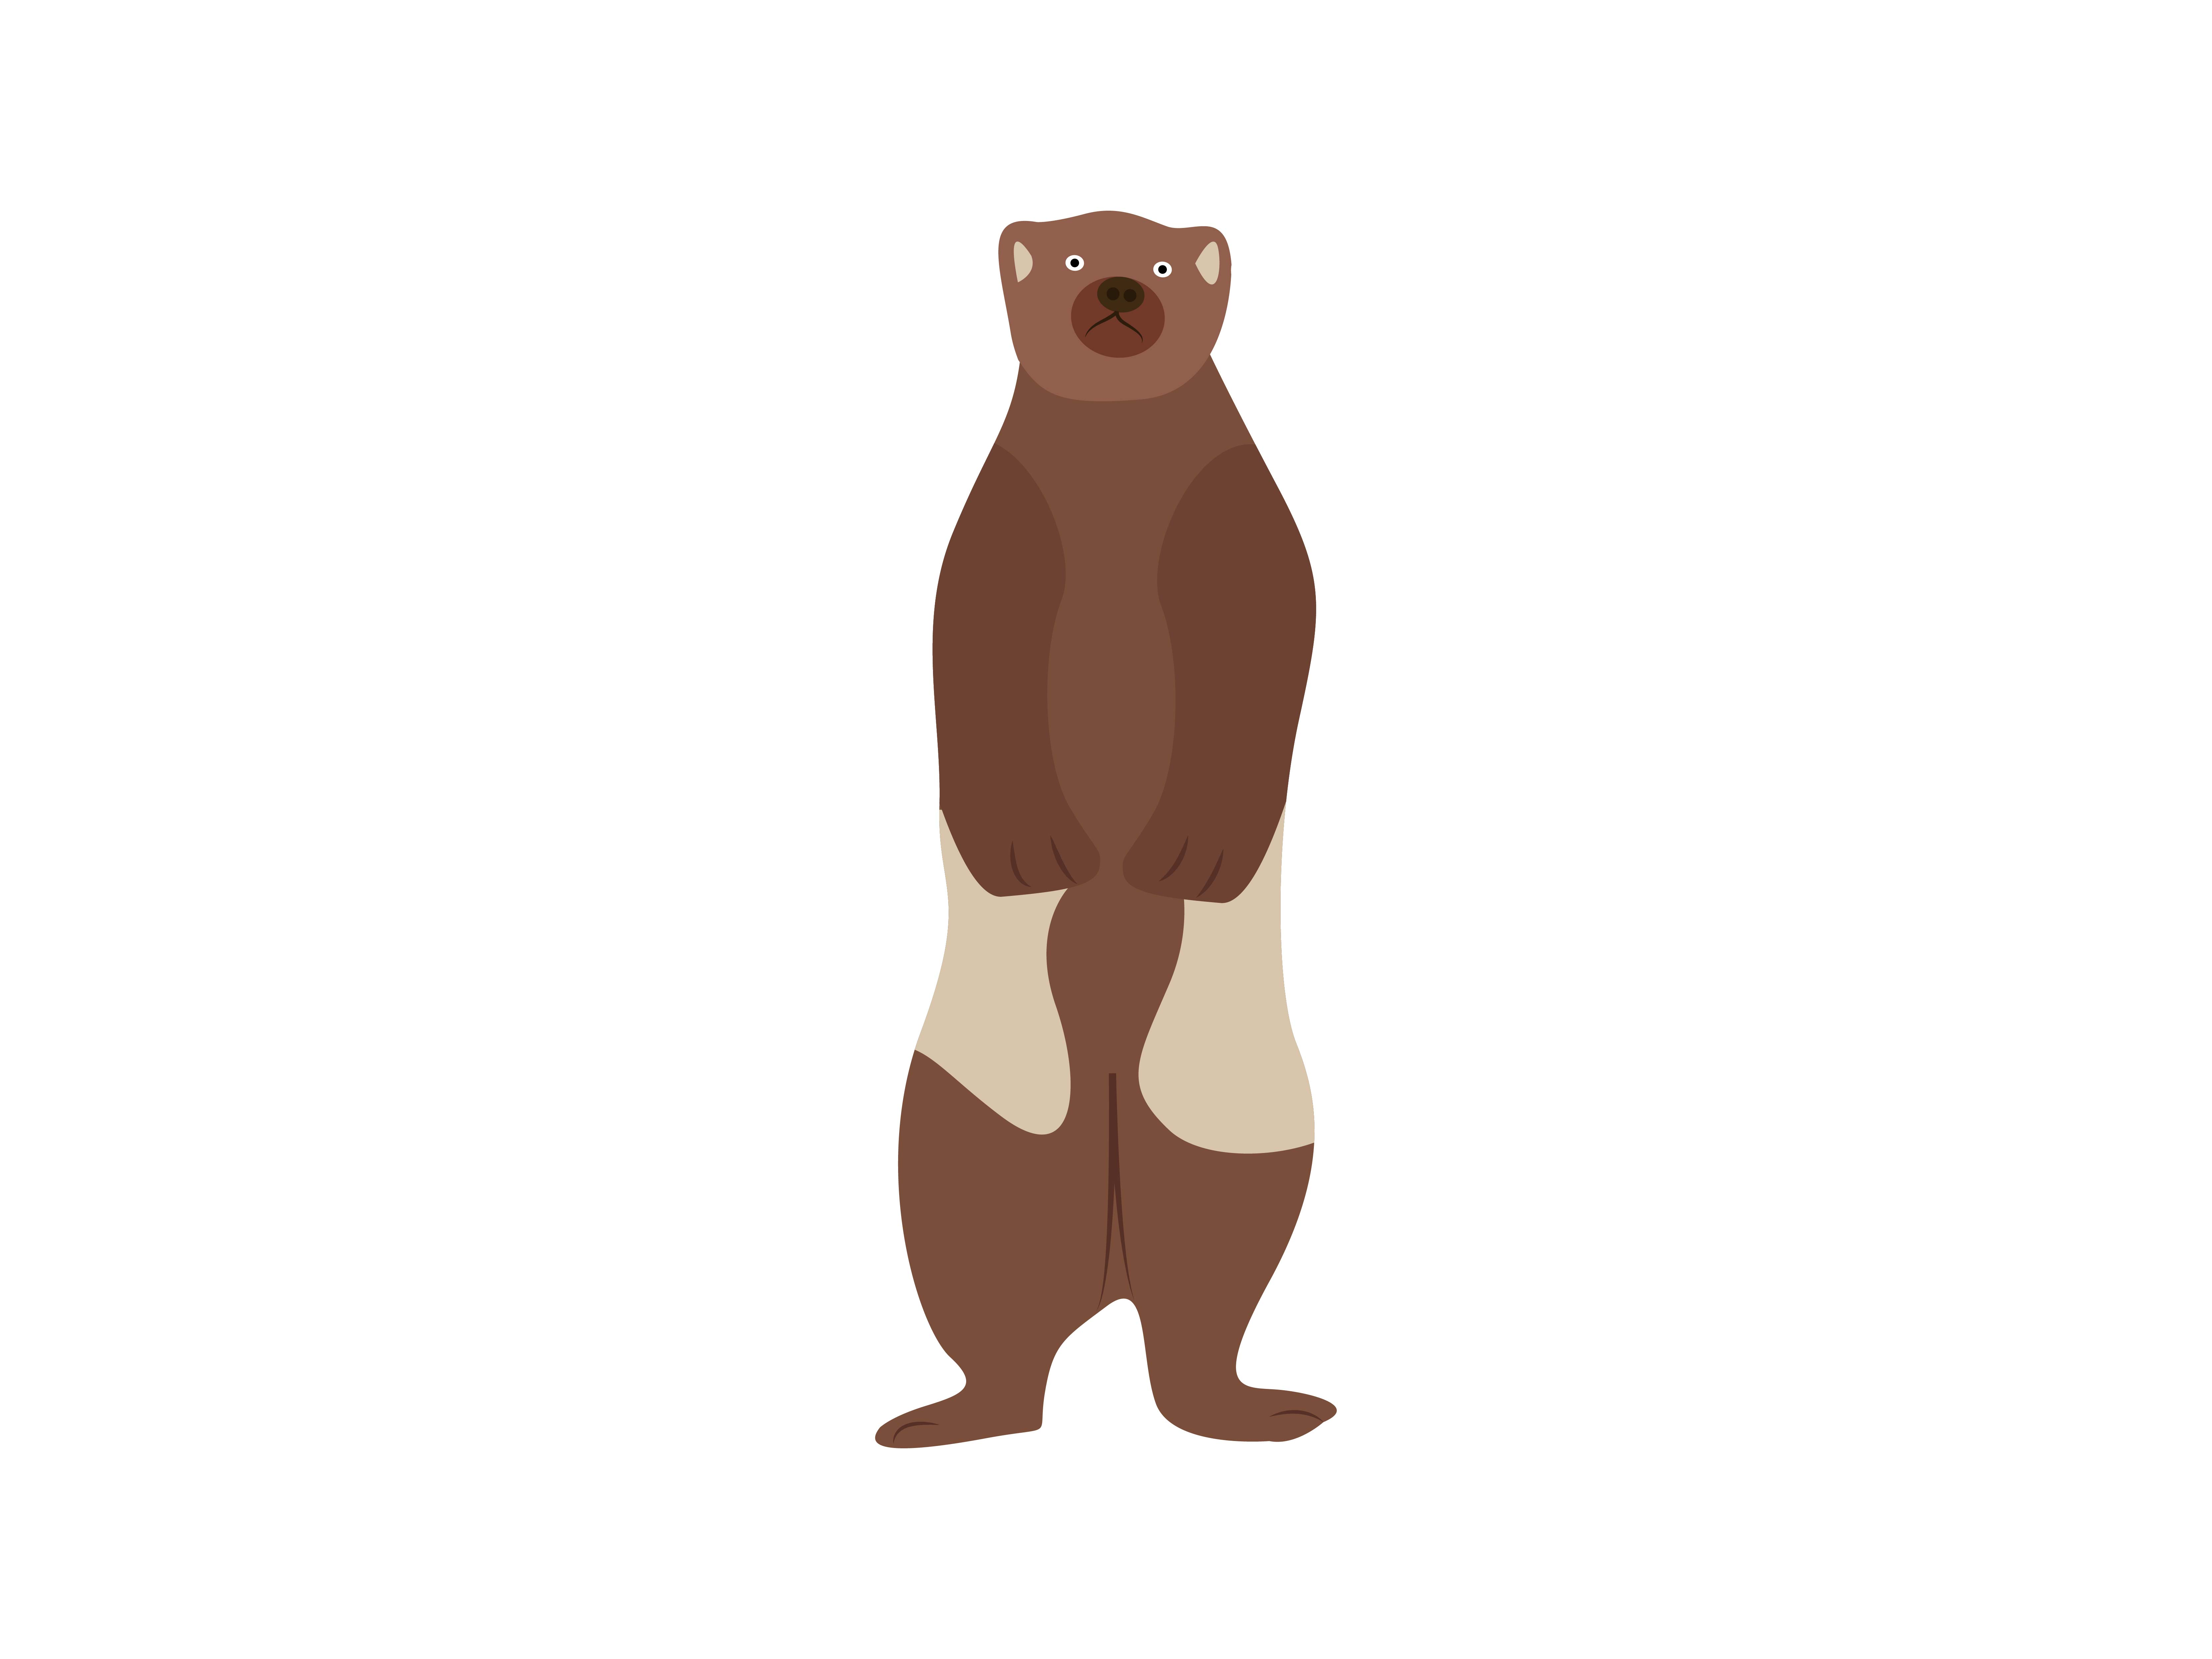 Download Free Wolfrine Standing Animal Graphic By Archshape Creative Fabrica for Cricut Explore, Silhouette and other cutting machines.